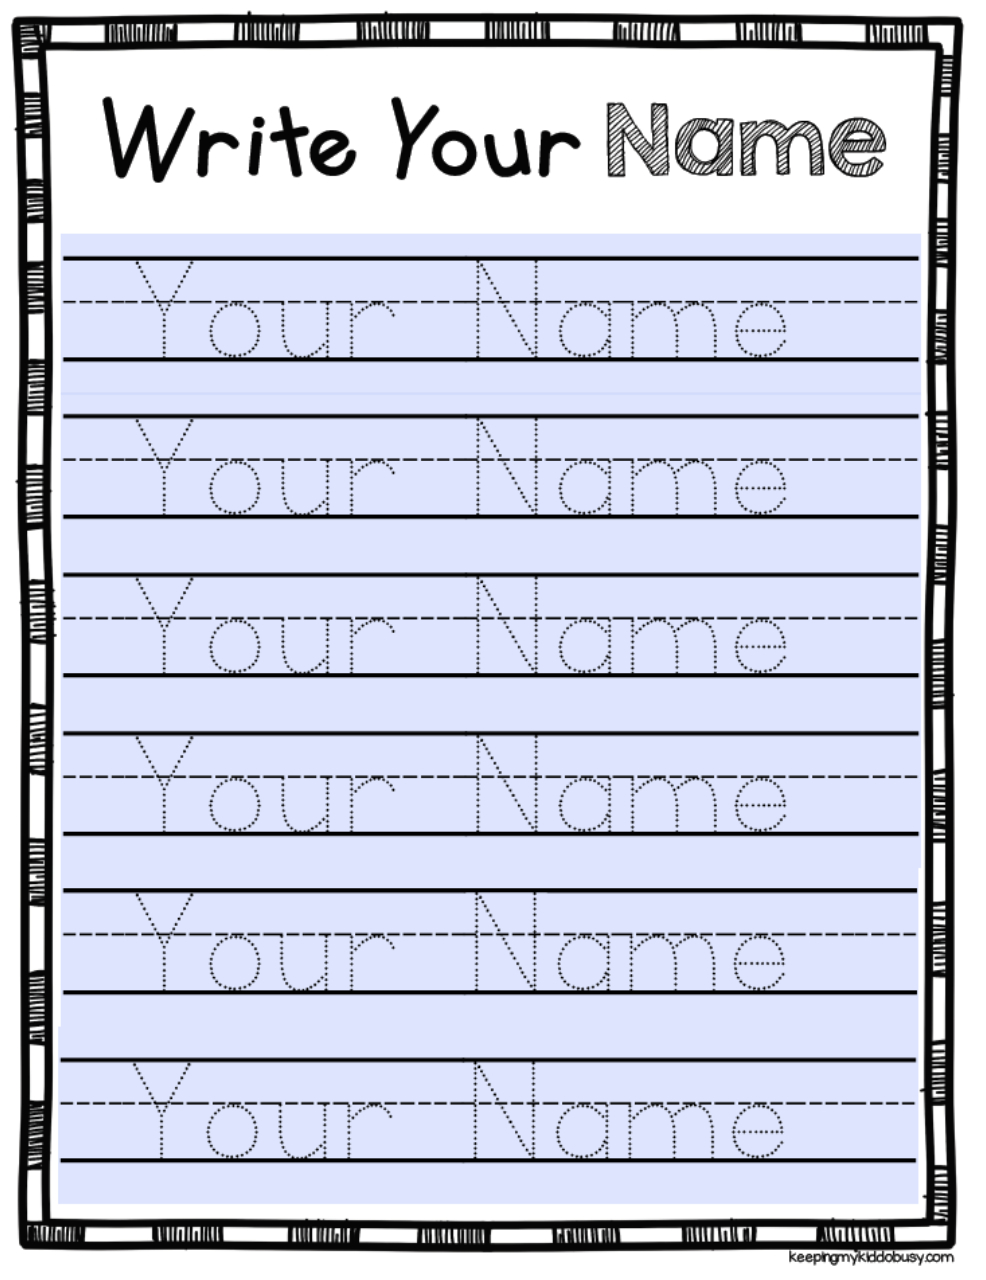 Free Editable Name Tracing Activity - Type Student Names And intended for Name Tracing Kinder